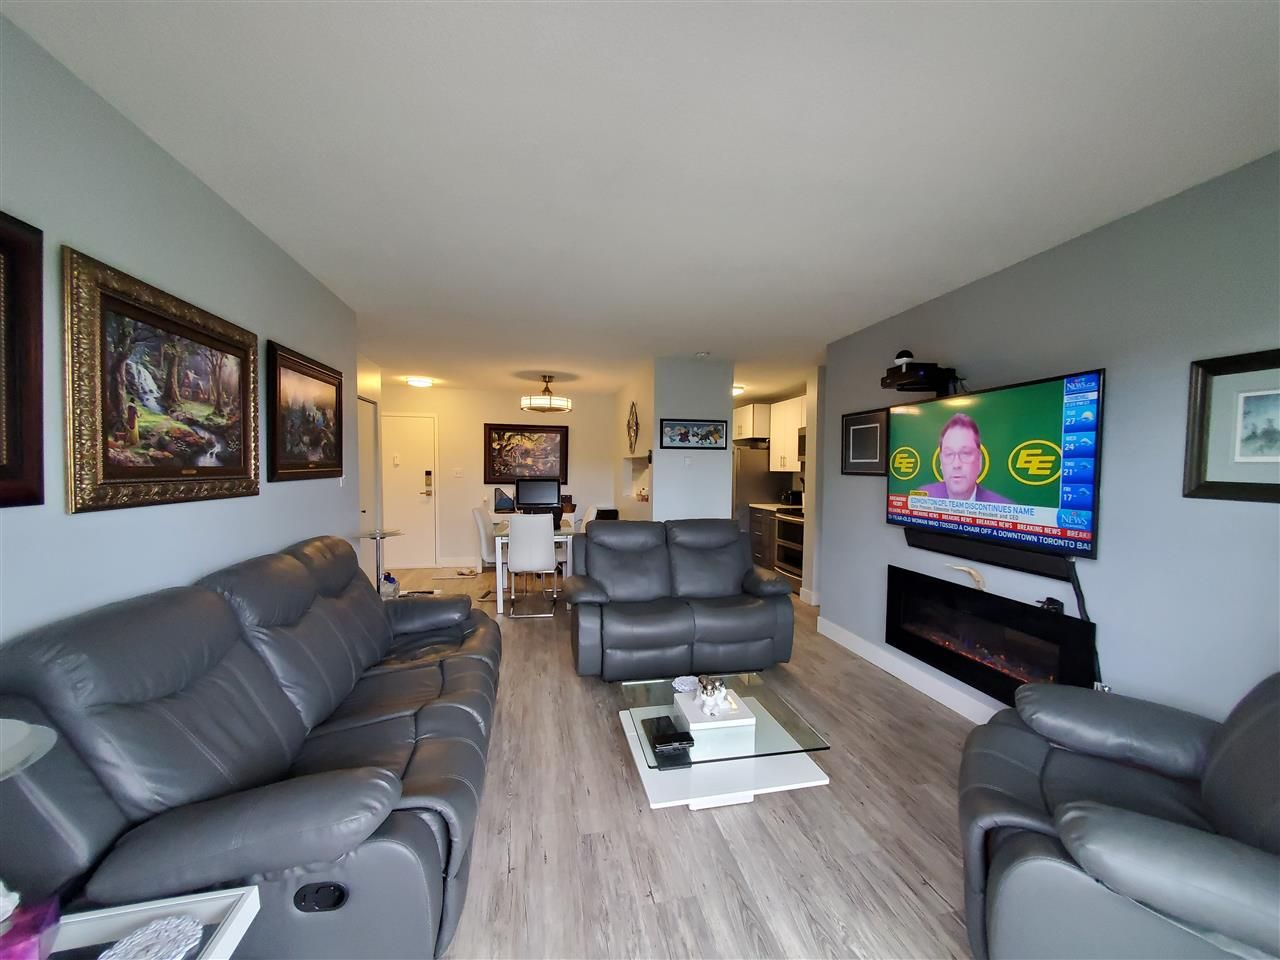 Main Photo: 325 6720 158 Avenue in Edmonton: Zone 28 Condo for sale : MLS®# E4221646